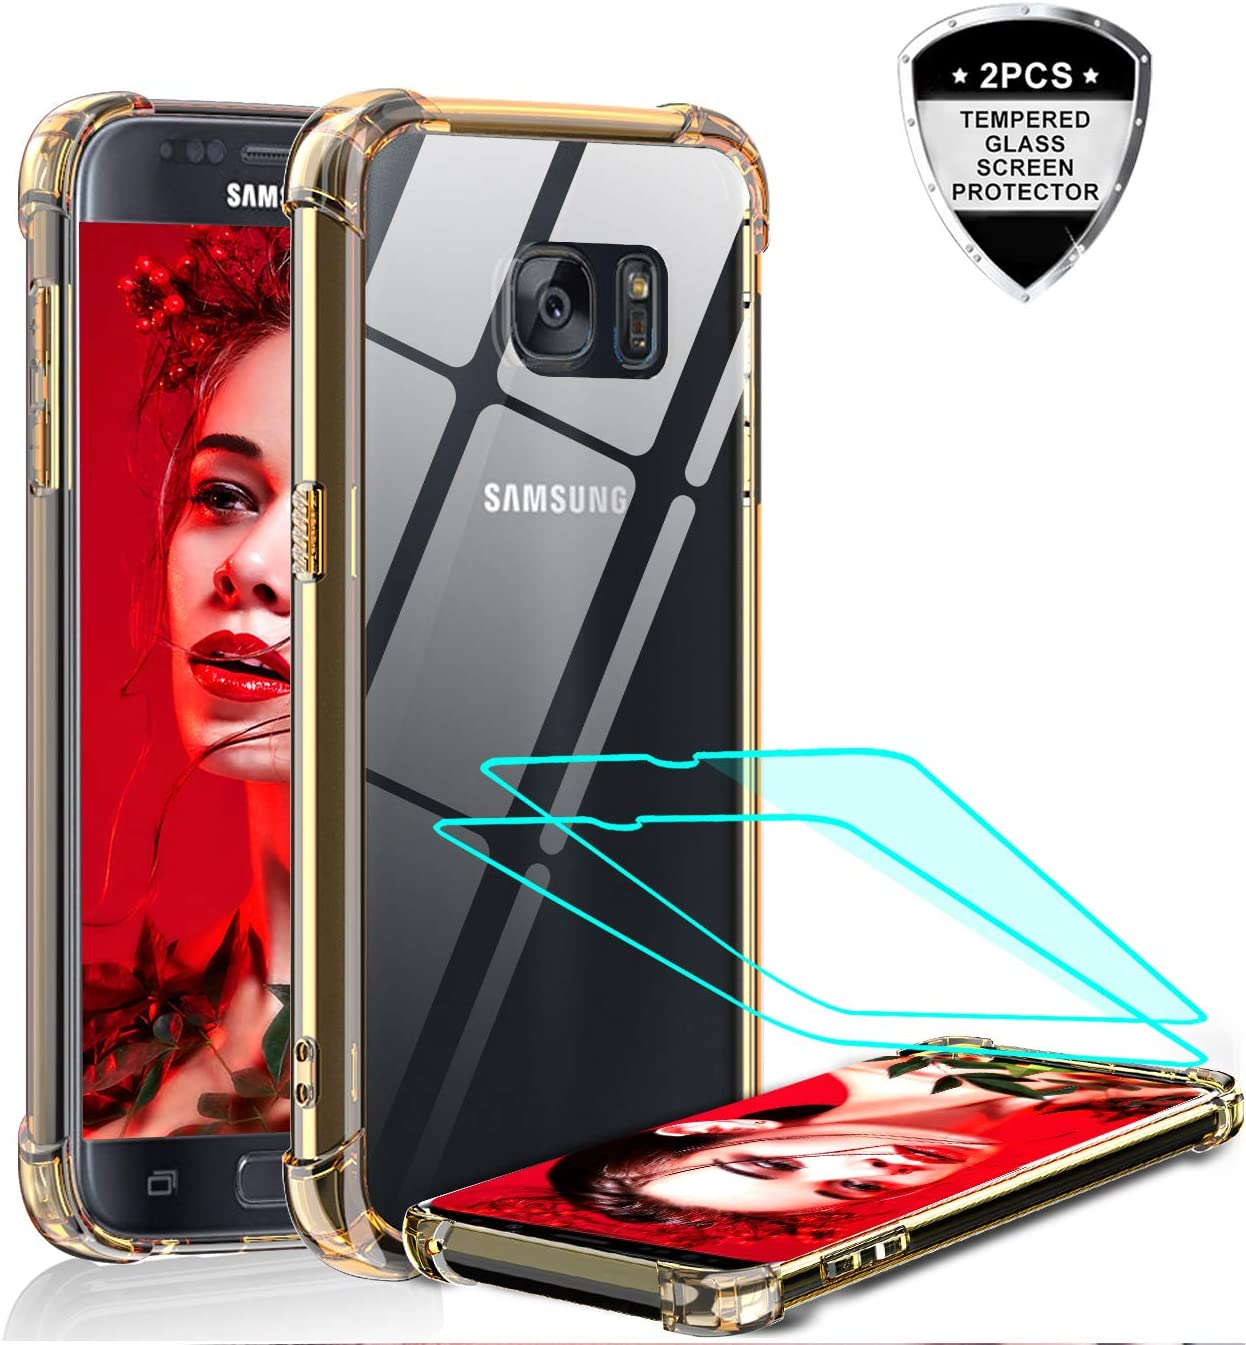 LeYi Galaxy S7 Case, Samsung Galaxy S7 Case with 2 Pack Tempered Glass Screen Protector, Shockproof Crystal Clear Hard PC Bumper Transparent Slim Protective Phone Cover Cases for Samsung S7 Rose Gold